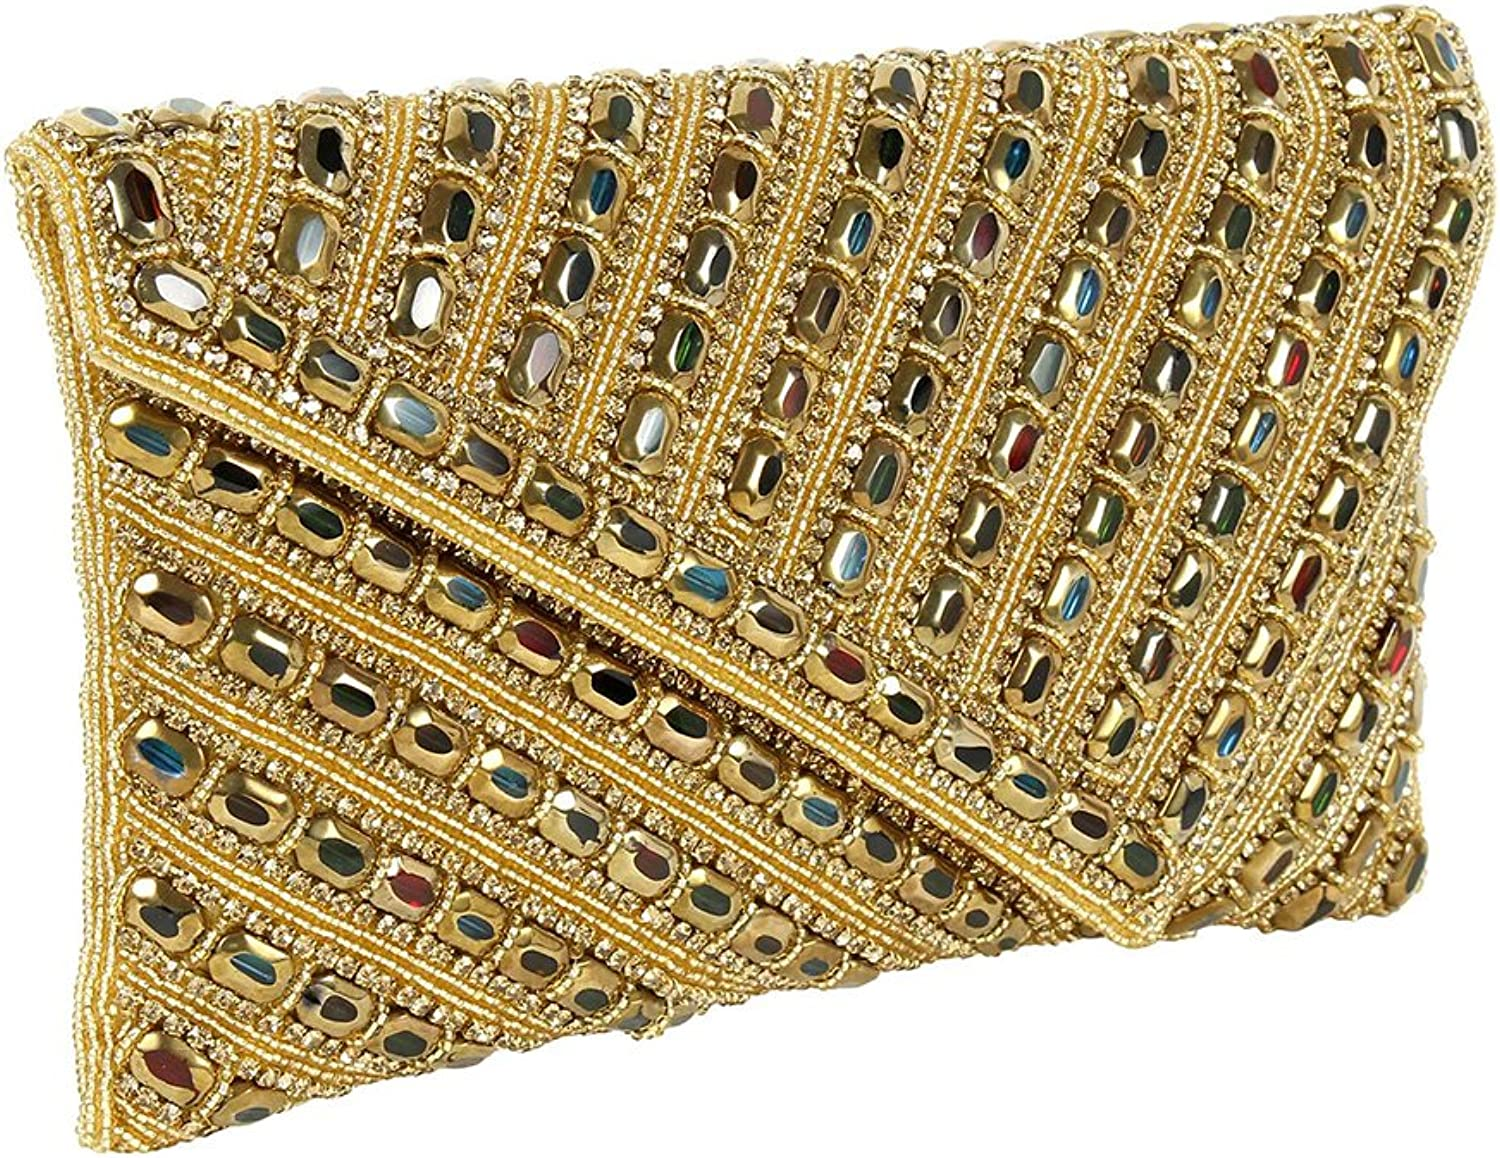 Purse Collection Multi Colour Most Beautiful Handmade Beaded Clutch Purses For Women's